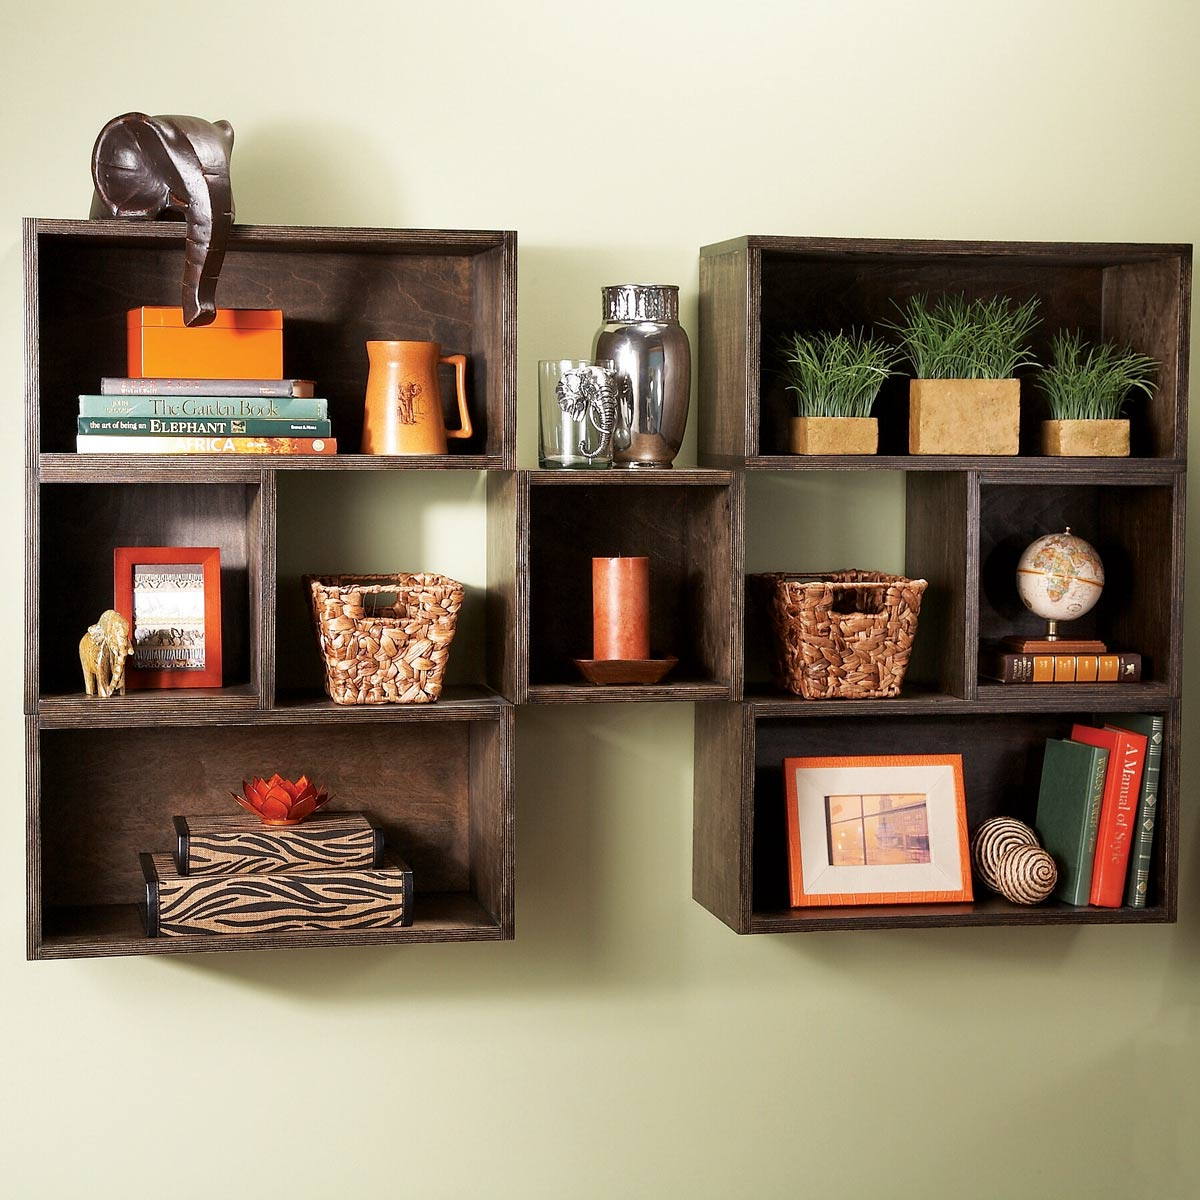 box diy shelves oak floating modular dvd melbourne pedestal sink cabinet heavy duty garage shelving suggestions square wall wood homework desk ikea book cube sky stands storage